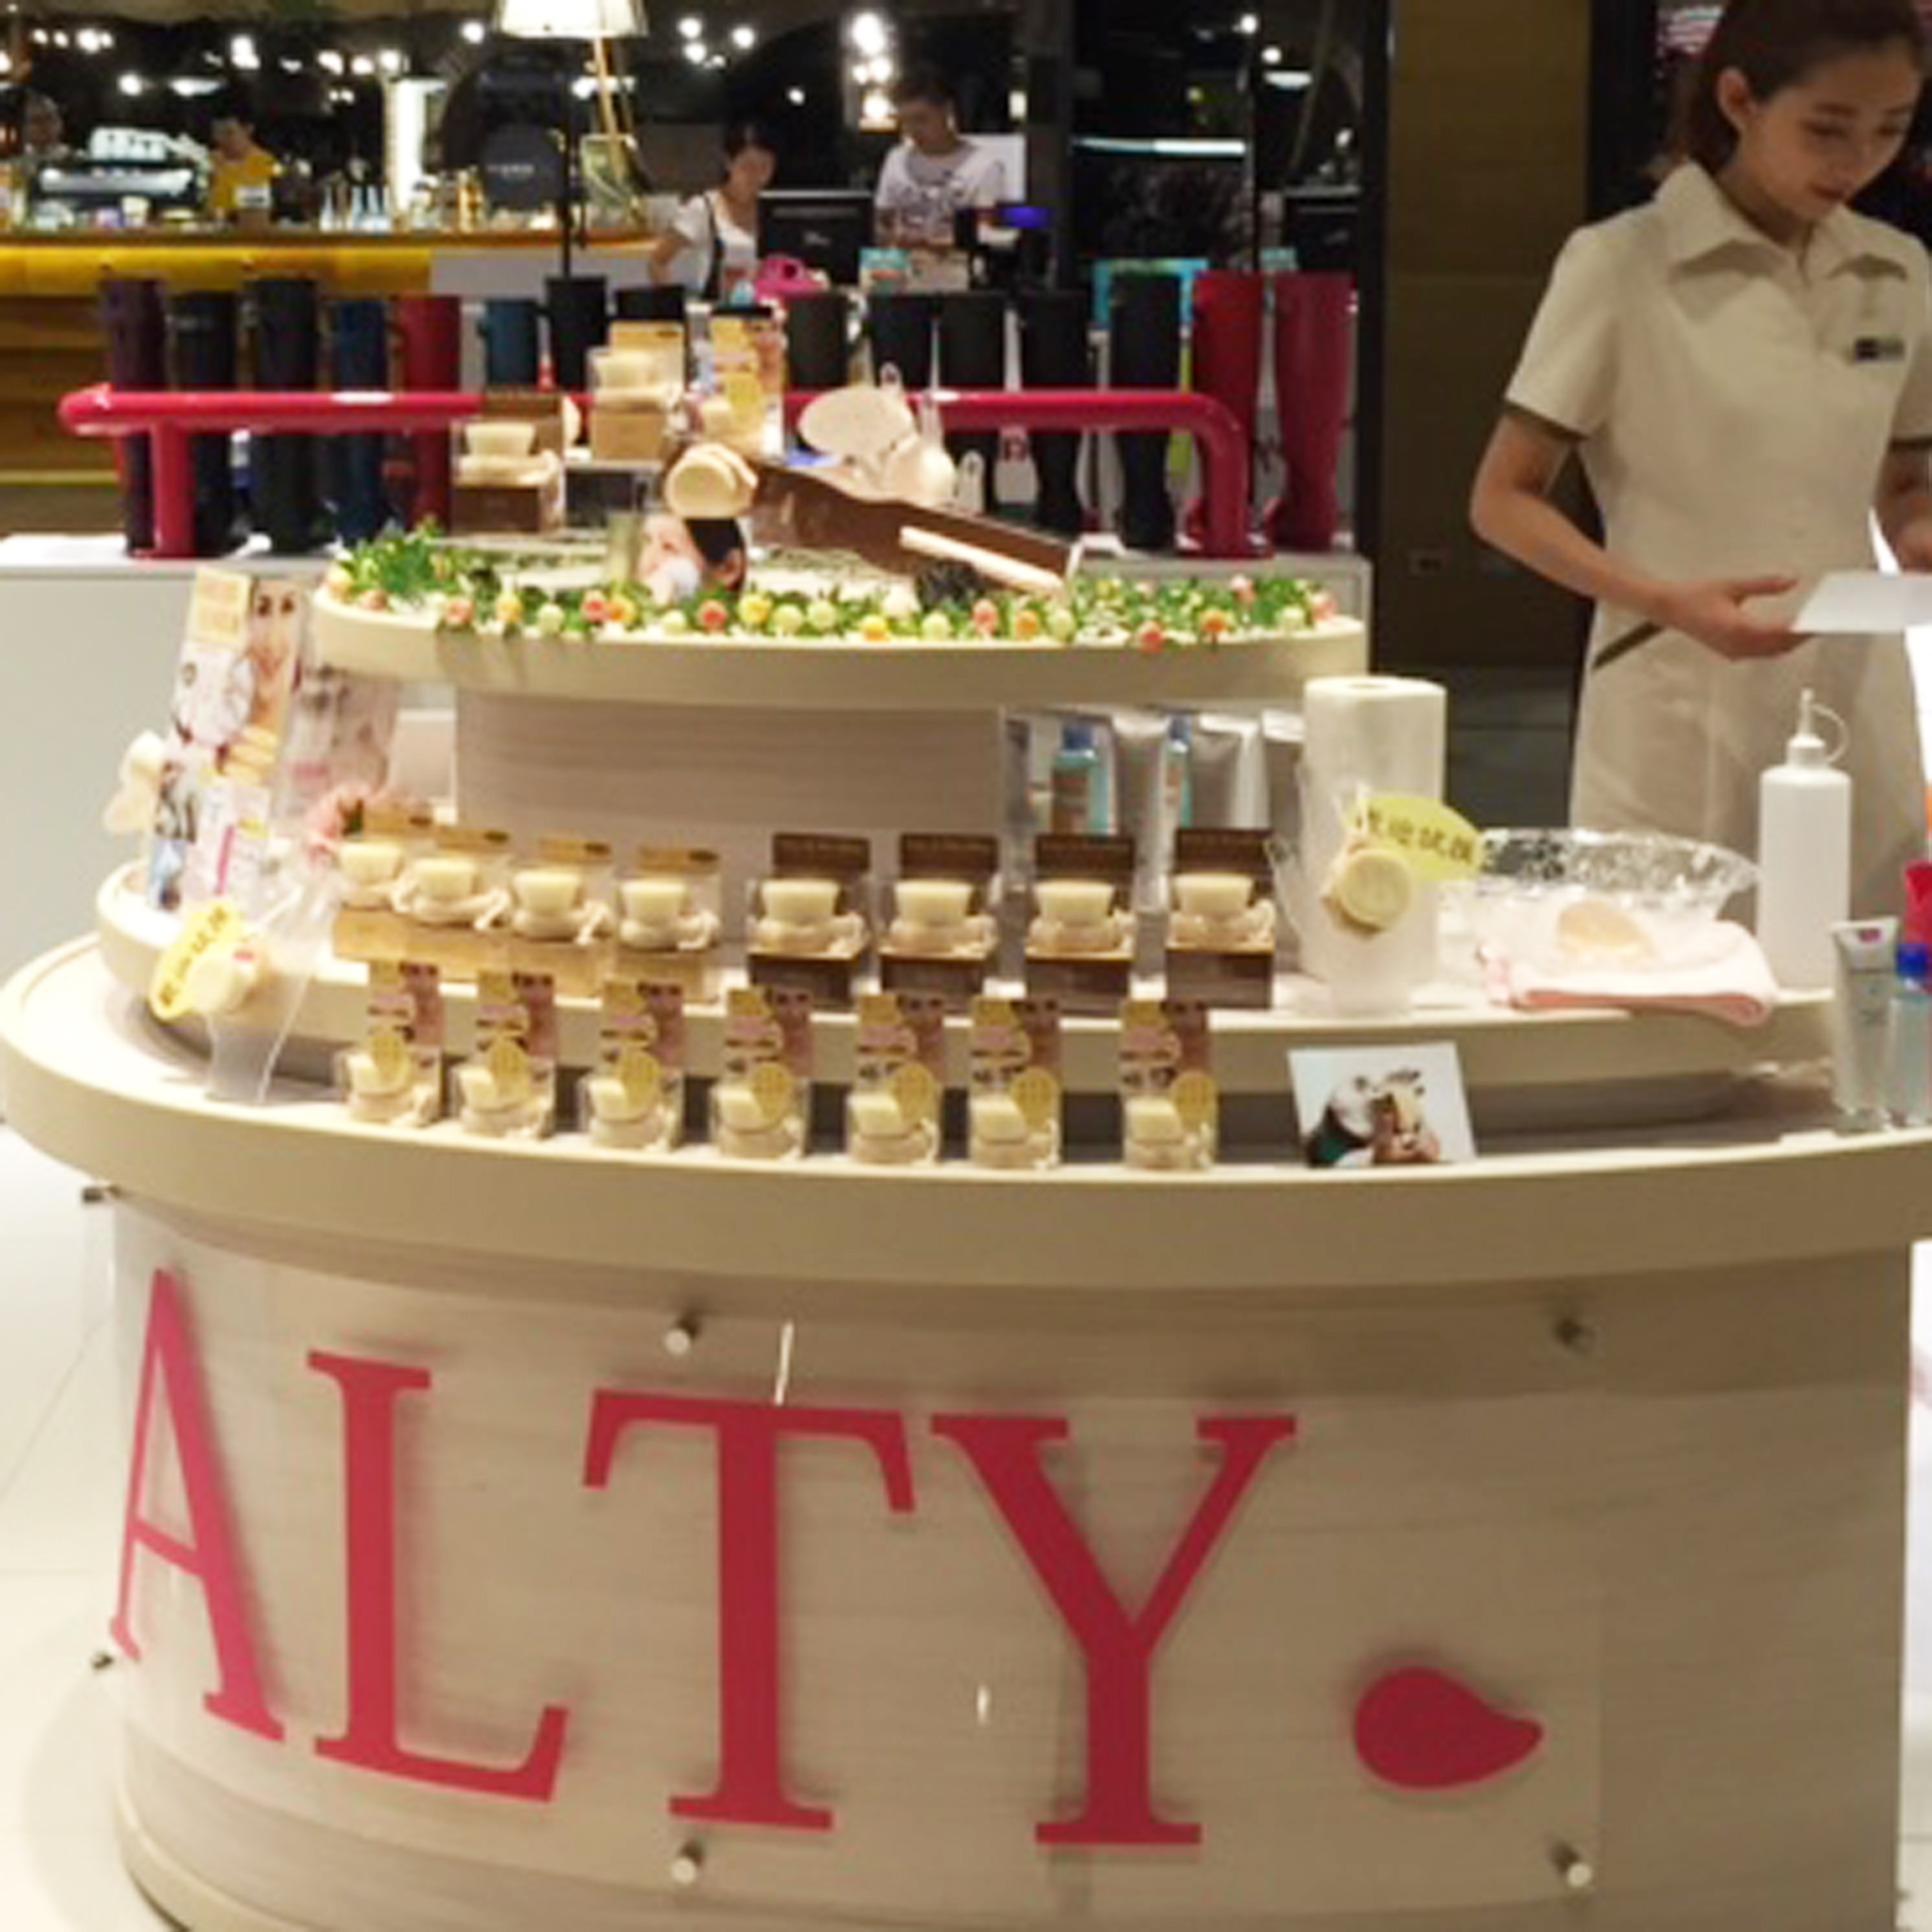 ALTY Taiwan promotion 1